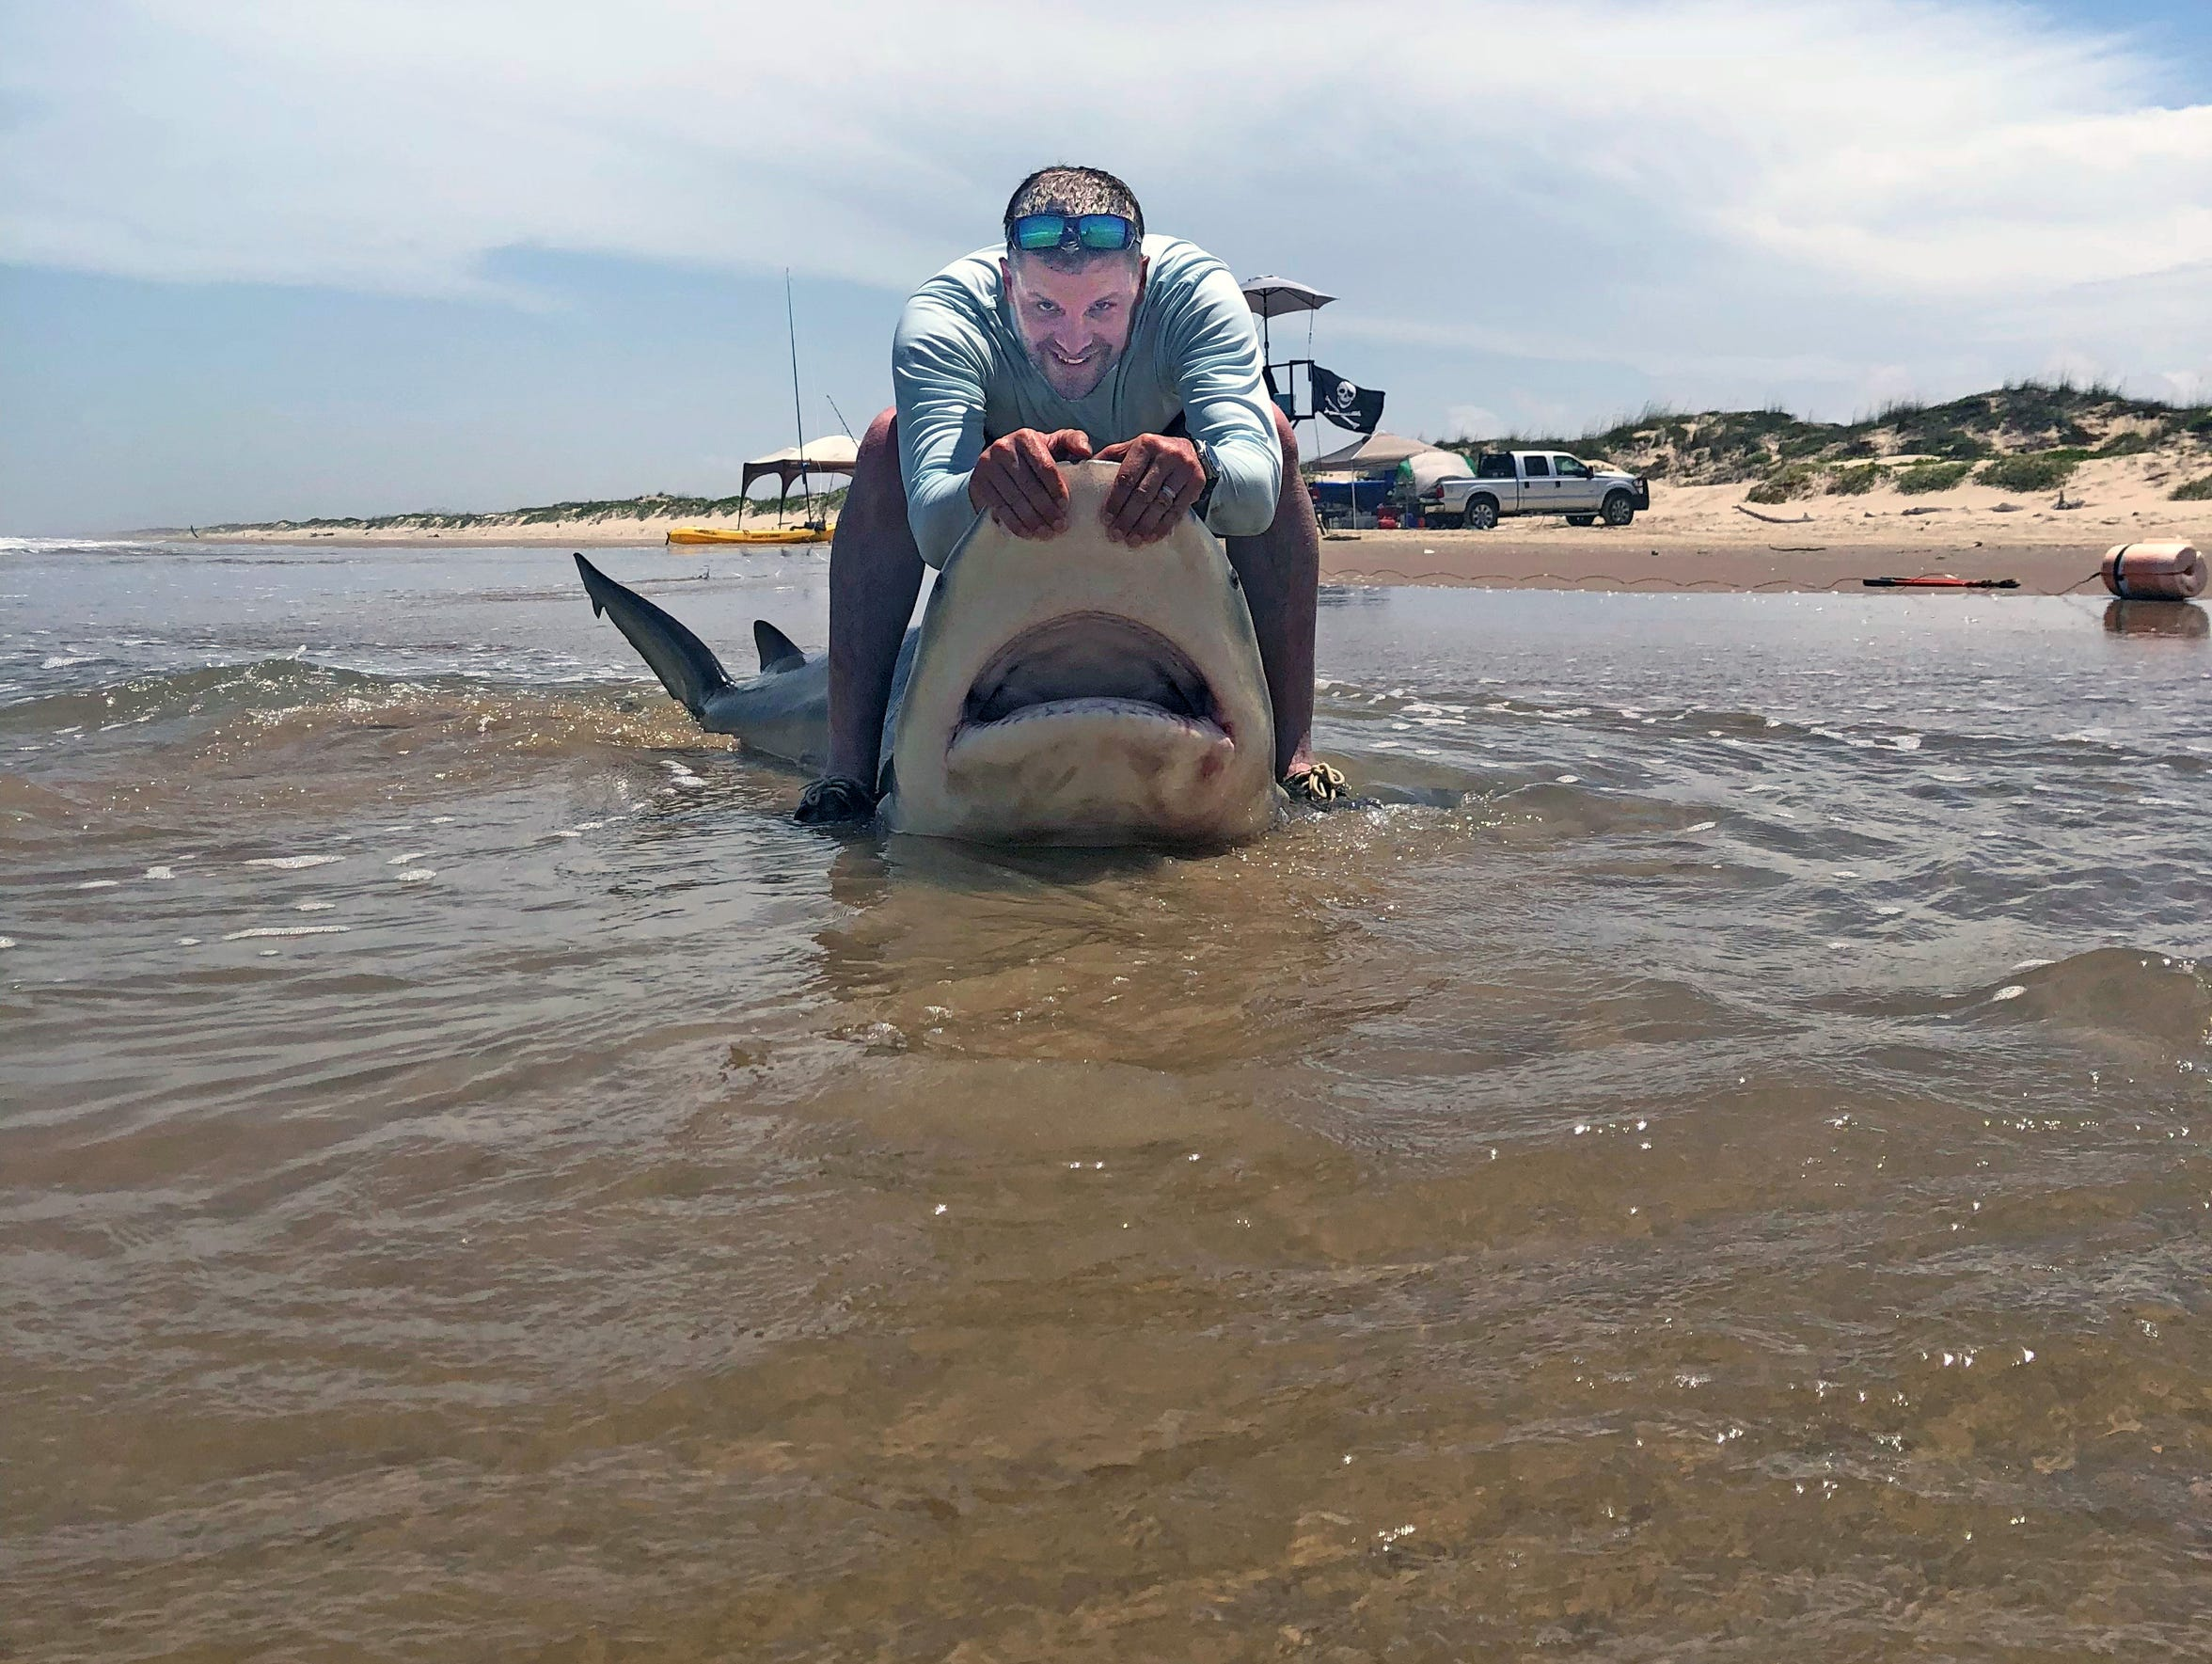 The shark was released after the fishermen snapped photos of it.